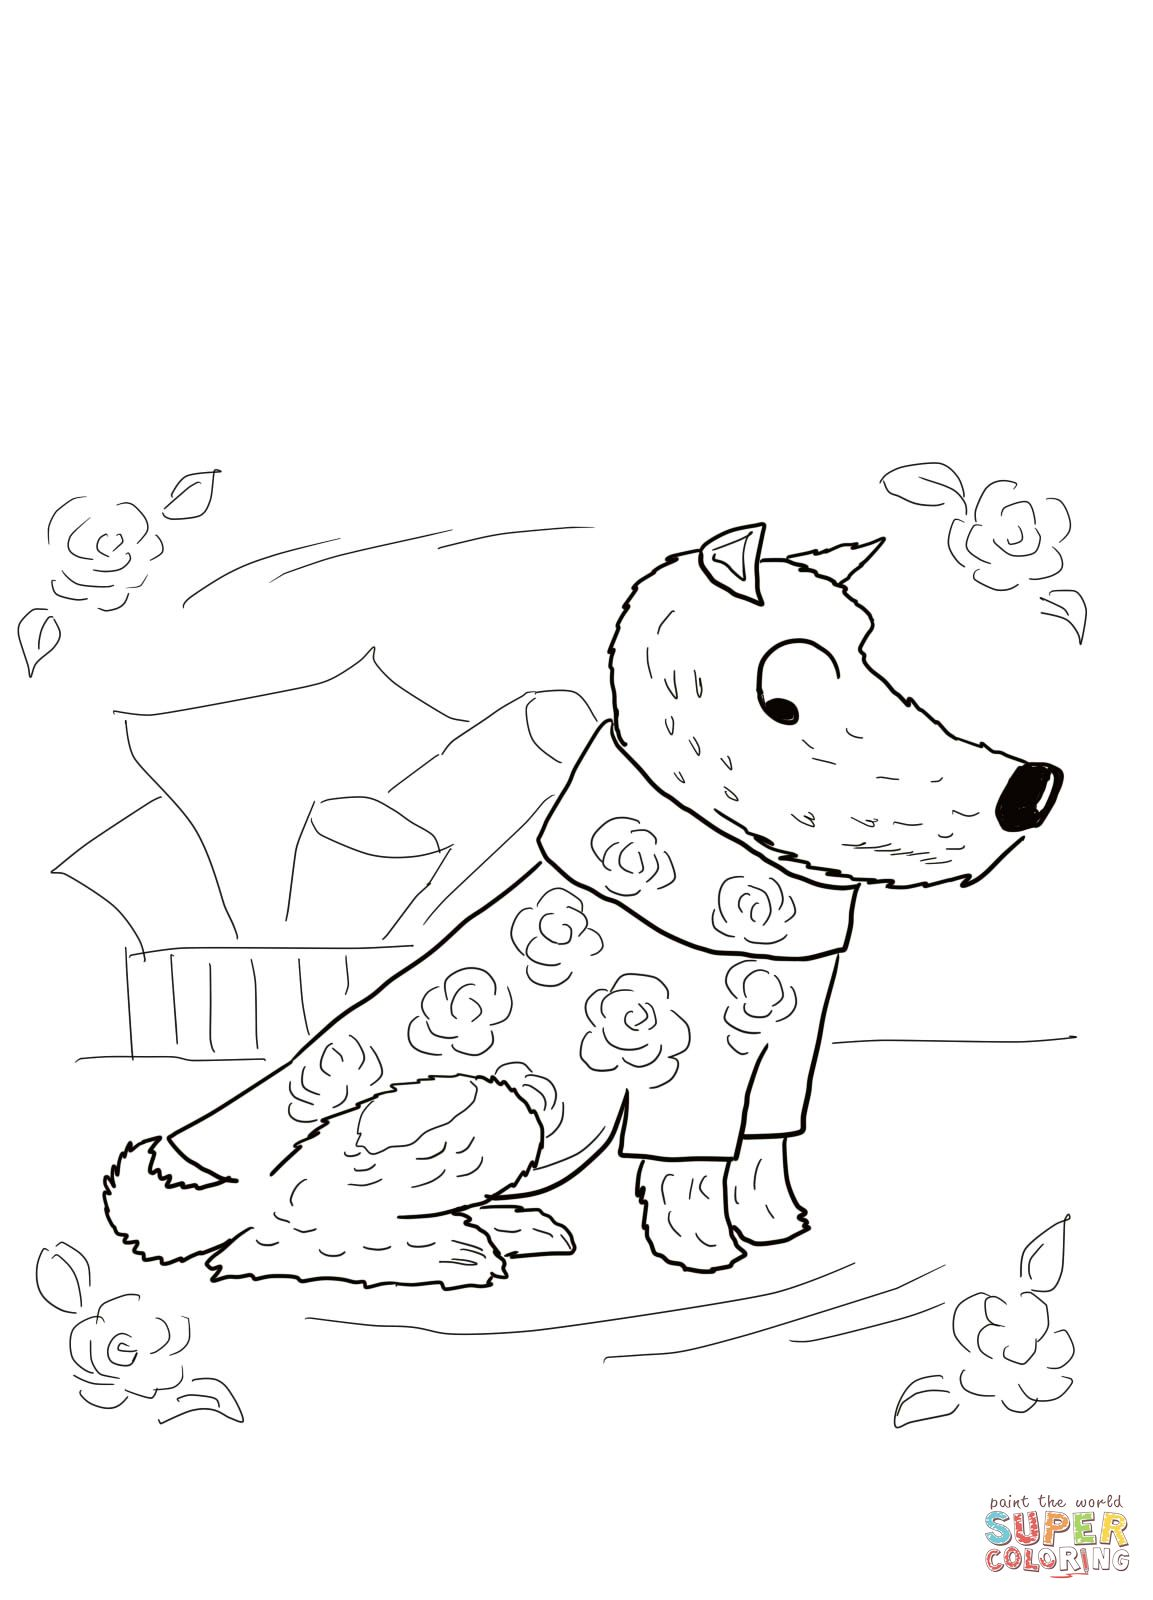 harry the dirty dog roses shirt coloring page | Retelling and Story ...